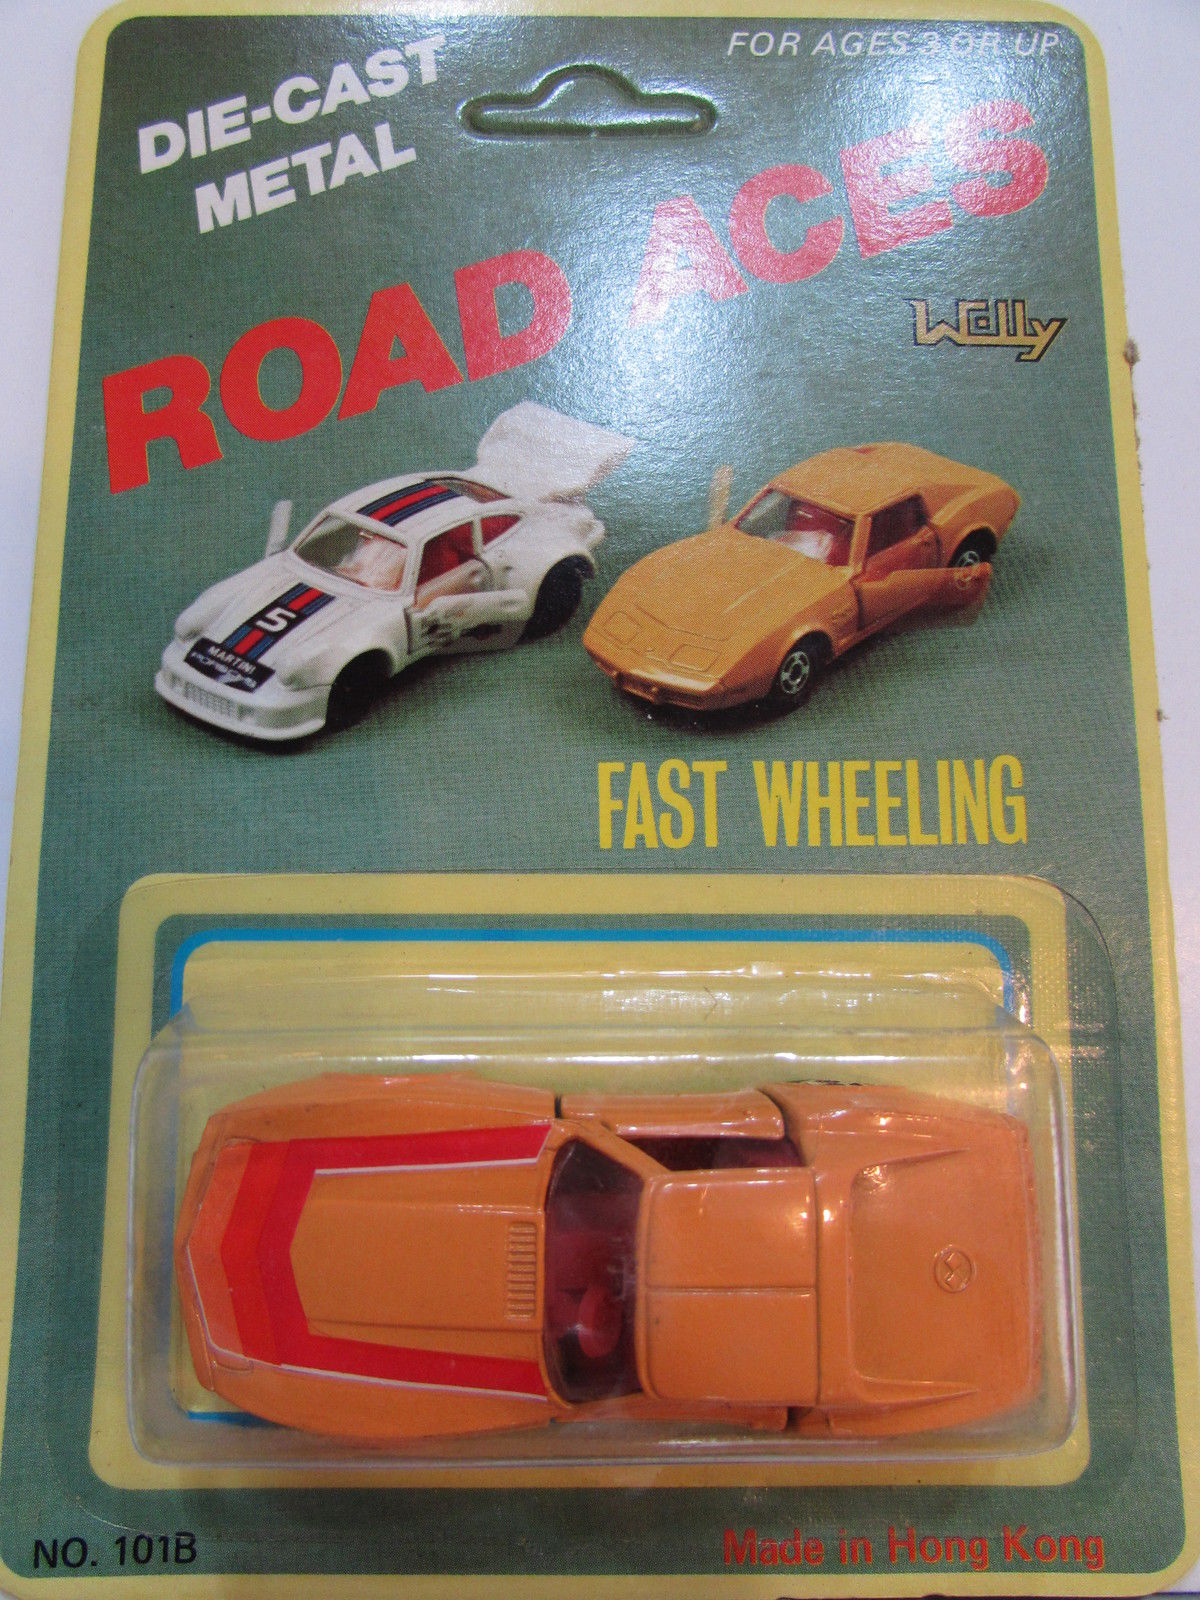 ROAD ACES FAST WHEELING - CORVETTE MADE IN HONG KONG